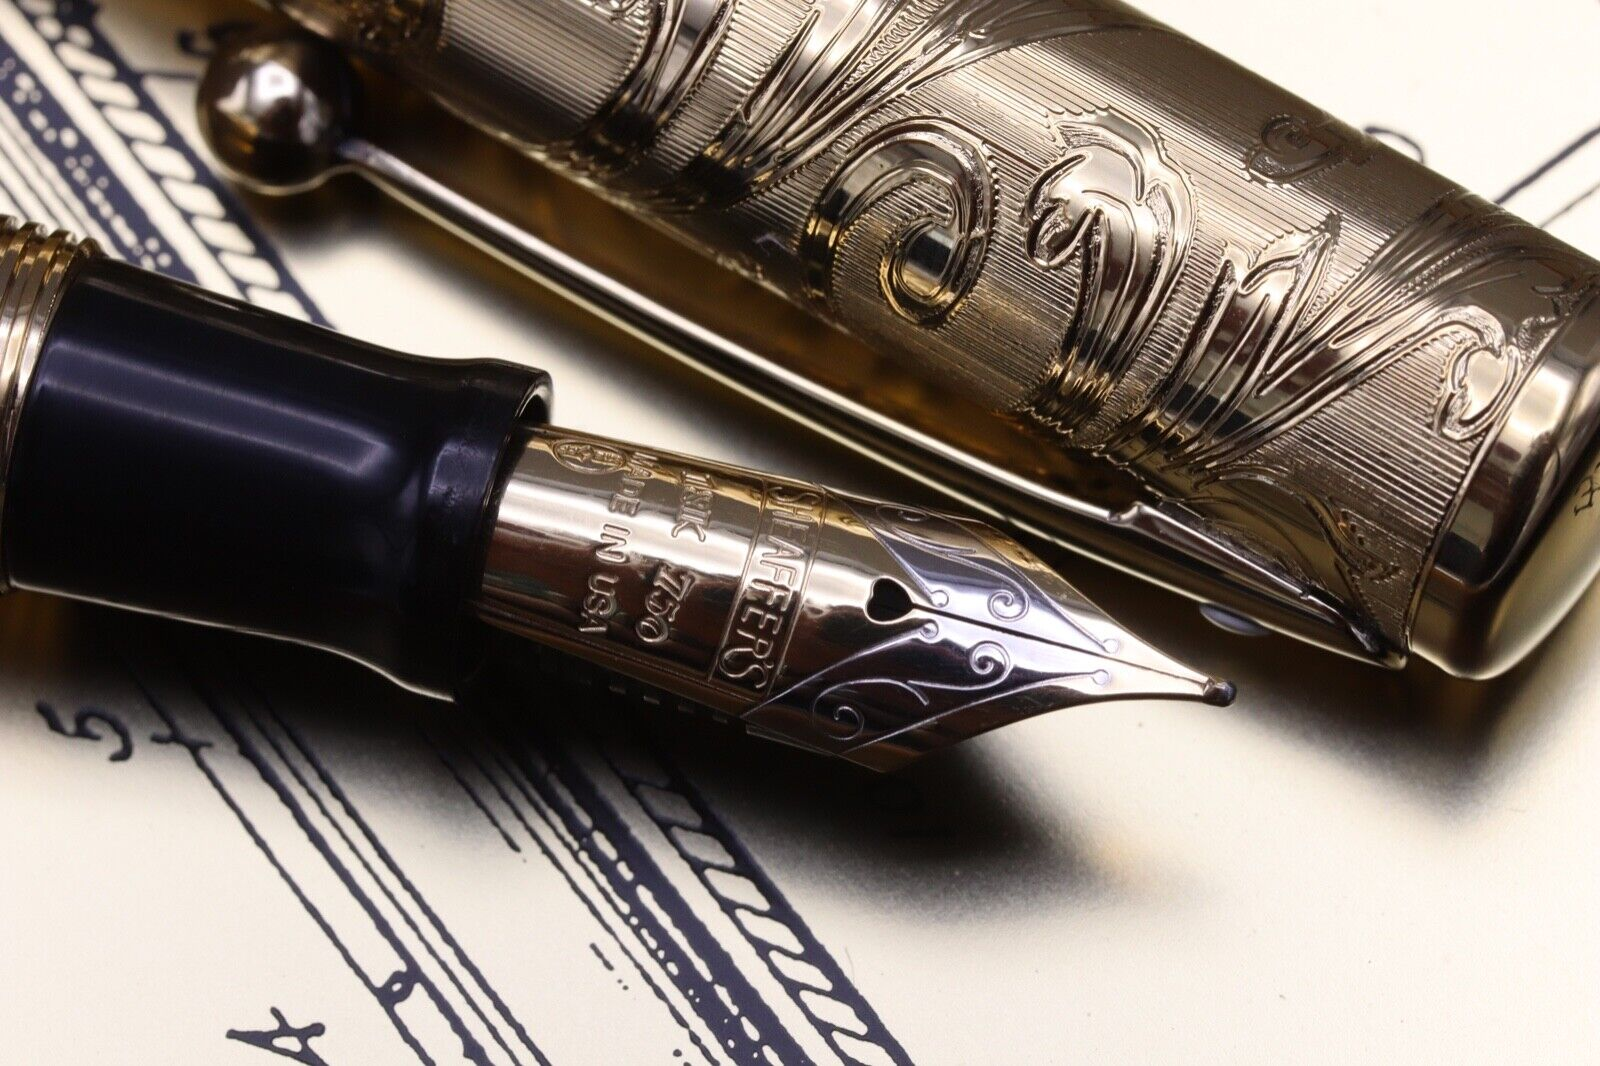 W.A Sheaffer Commemorative LE Lever Fill Fountain Pen - Fully Serviced July 21 3